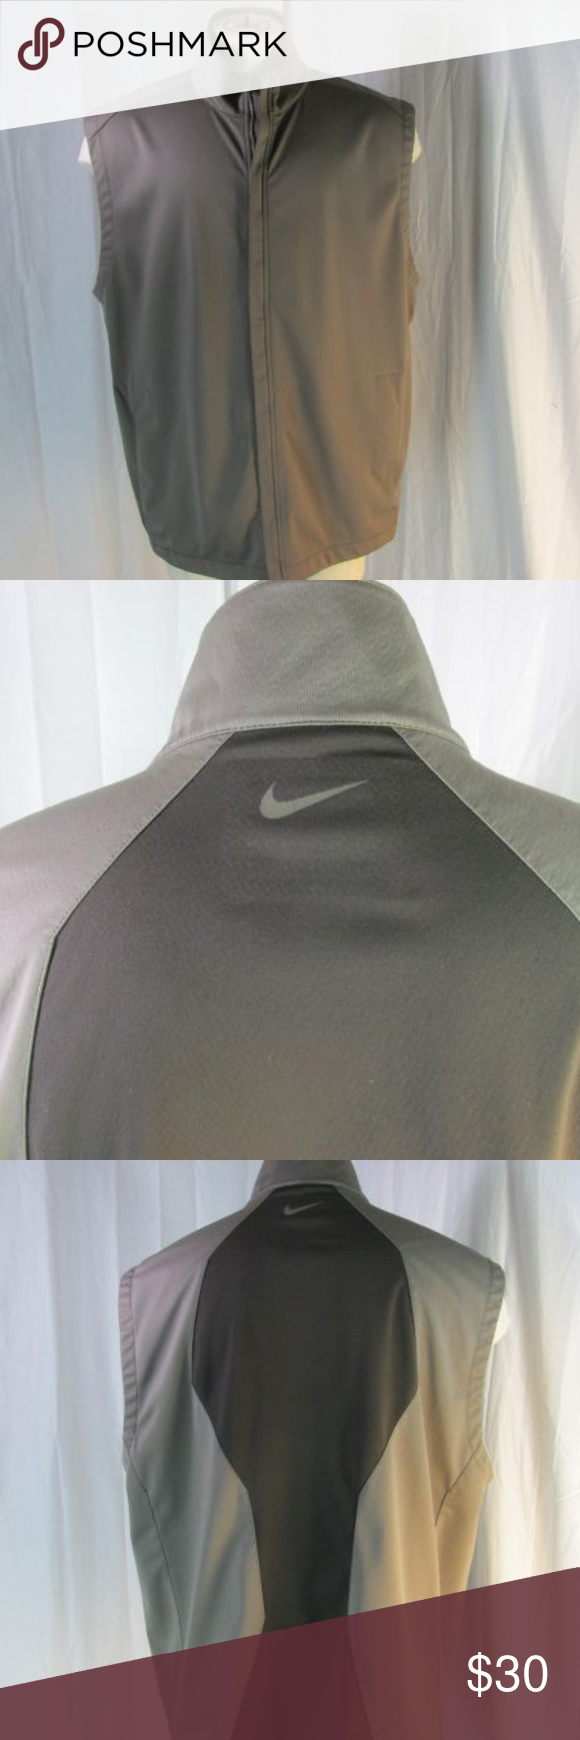 90216703b74e Nike Golf Sphere Pro Vest XXL Brown Water Nike Golf Sphere Pro vest. Full  zip